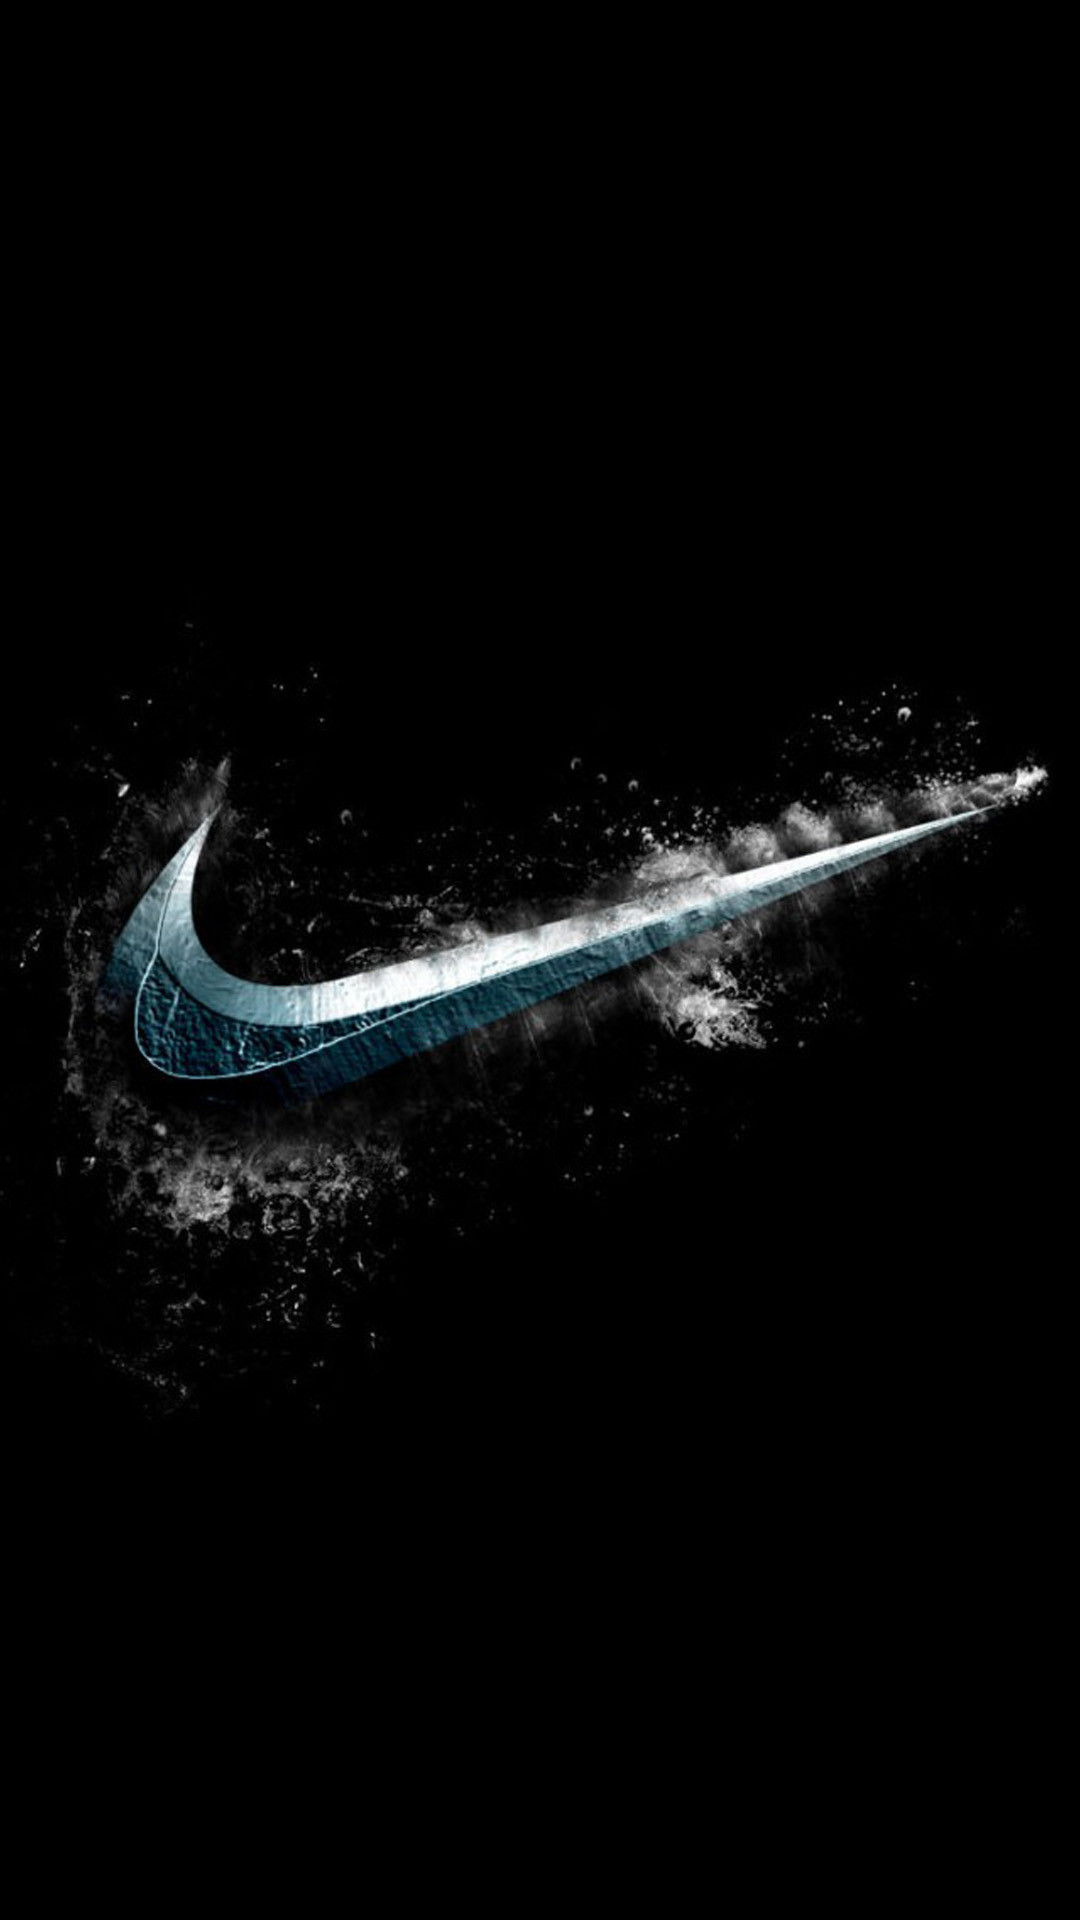 1080x1920 Nike LOGO 06 S4 Wallpapers, Samsung Galaxy S4 Wallpapers